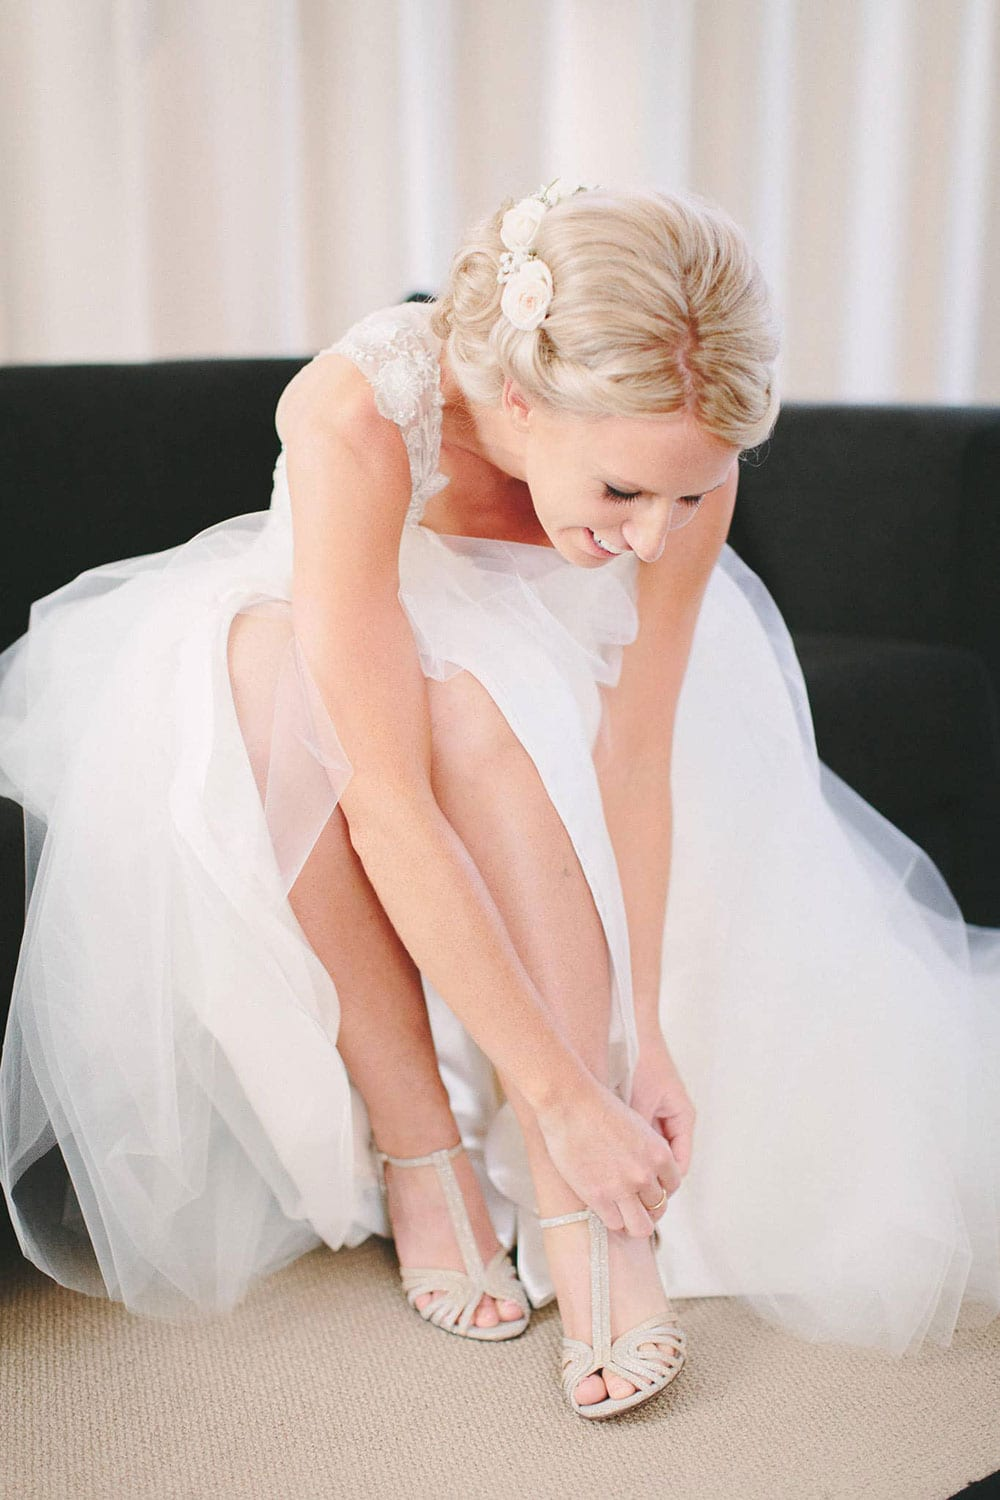 Real Weddings | Vinka Design | Real Brides Wearing Vinka Gowns | Louise and Ryan - Louise putting on wedding shoes